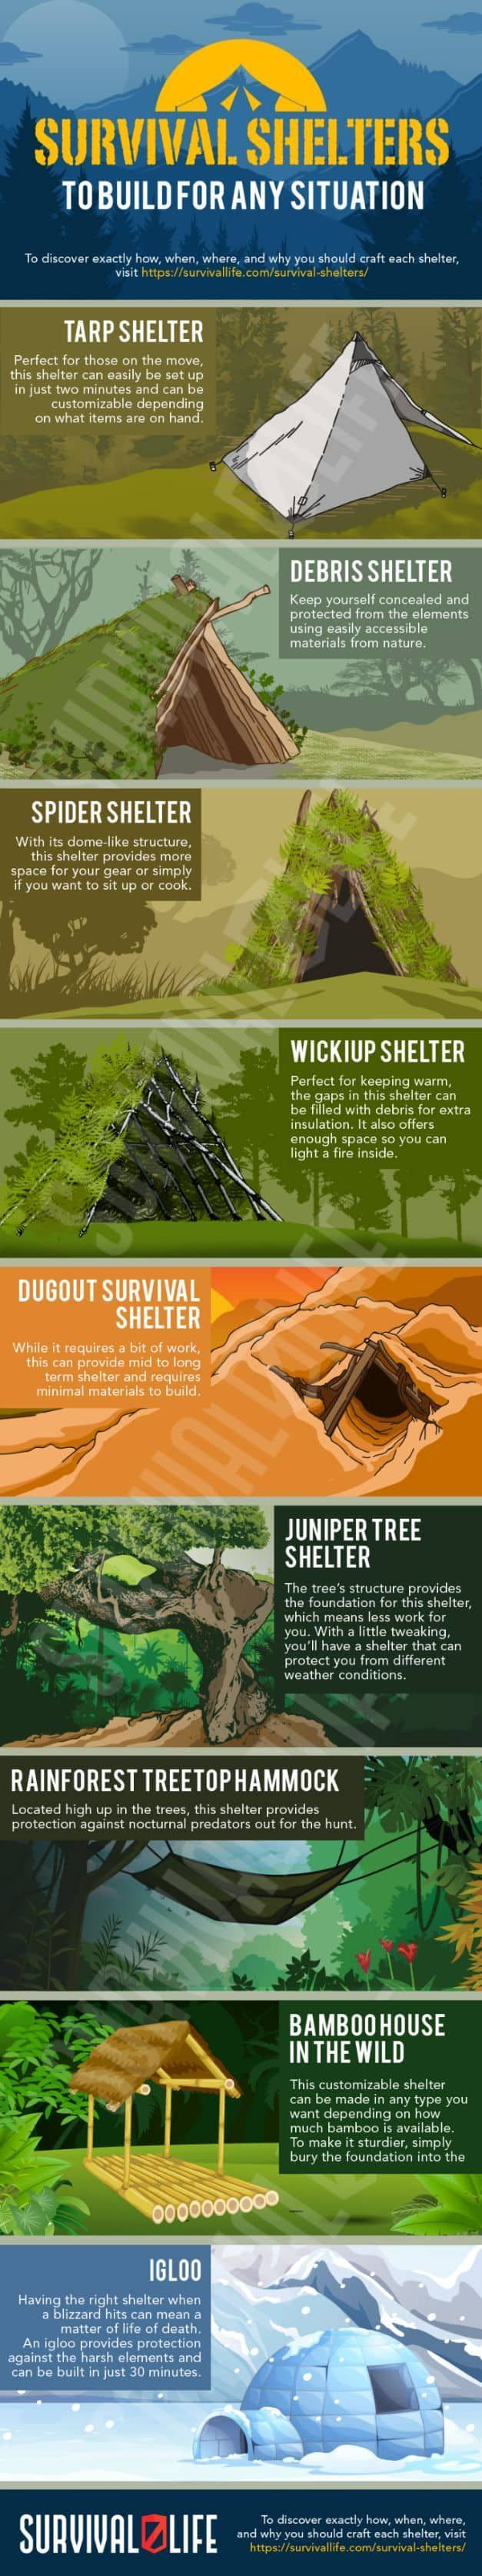 Check out The DIY Survival Shelters You Need To Know To Survive Anything at https://survivallife.com/survival-shelters/